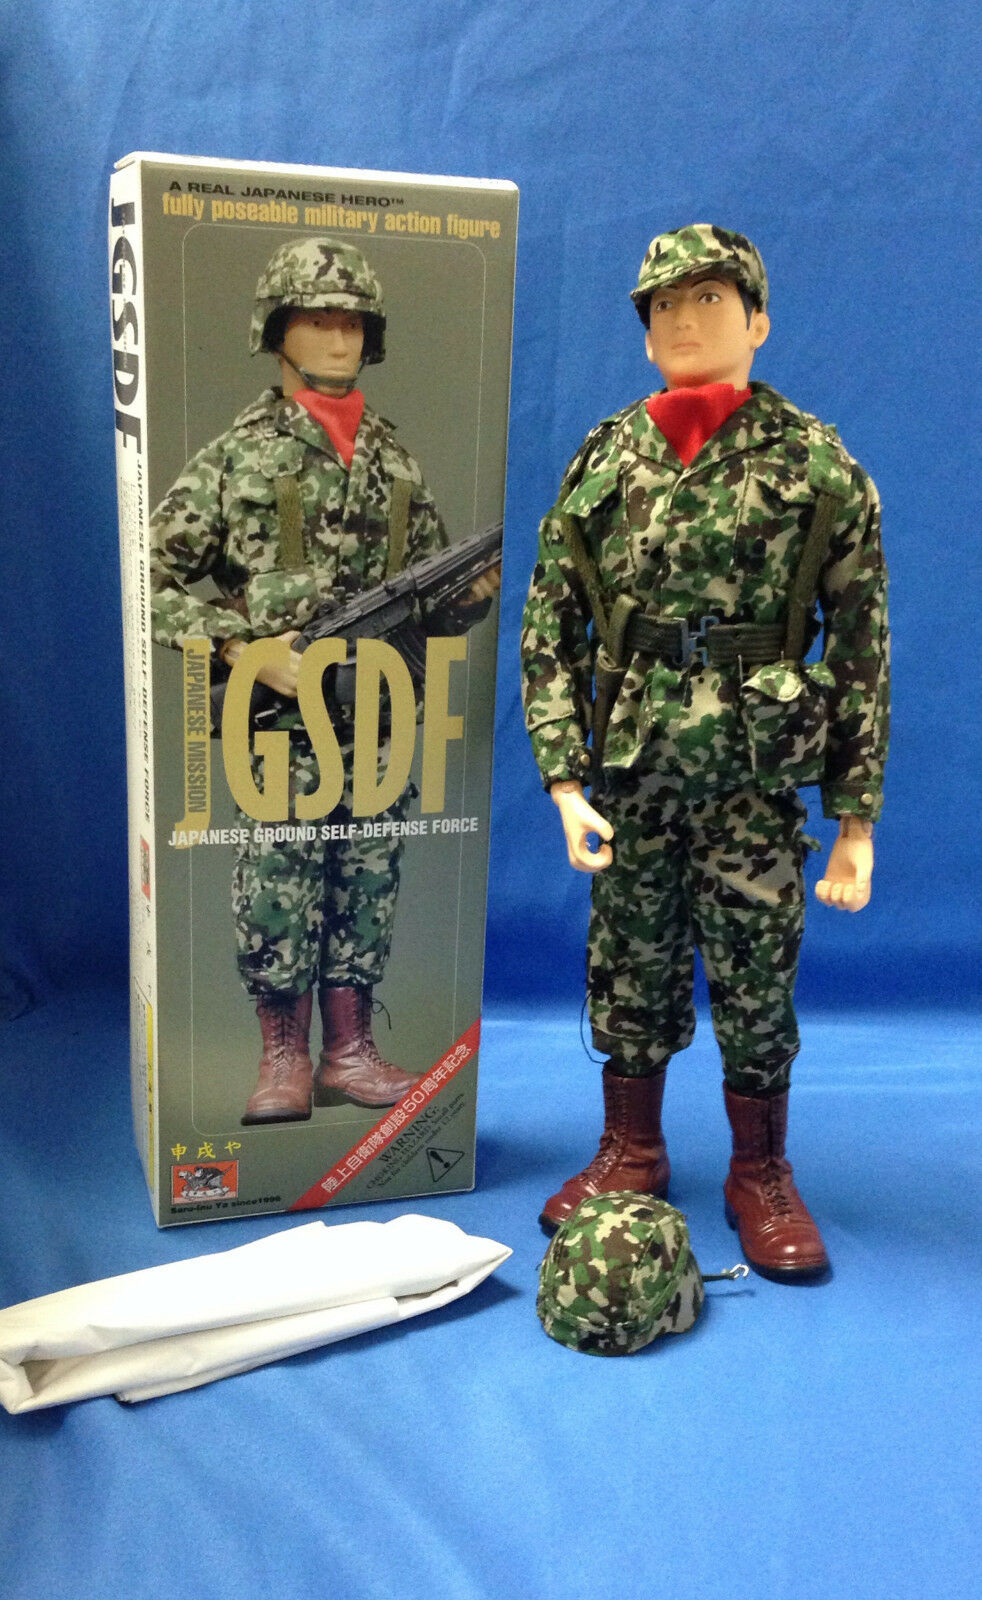 RARE NEW 1999 Saru-Inu Ya 1 6 Japanese Ground Self Defense Force Figure GJ JOE